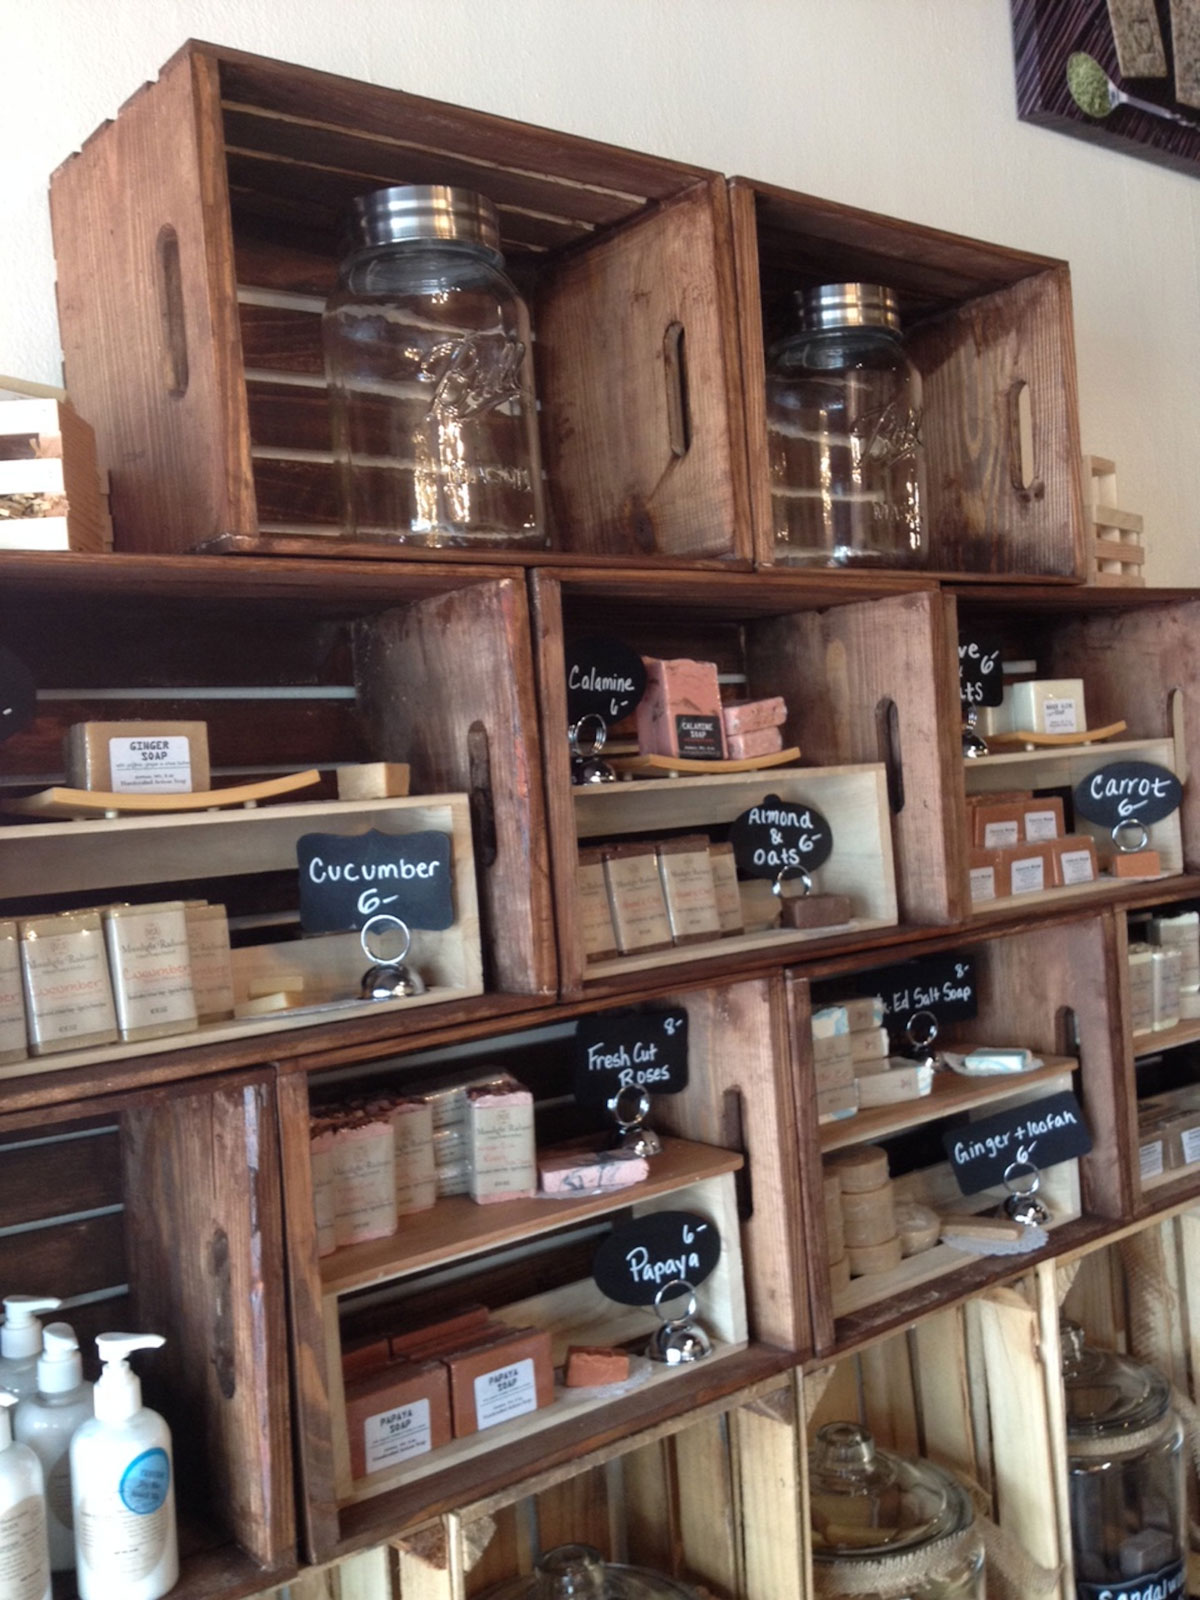 Shelves of soaps at Moonlight Radiance